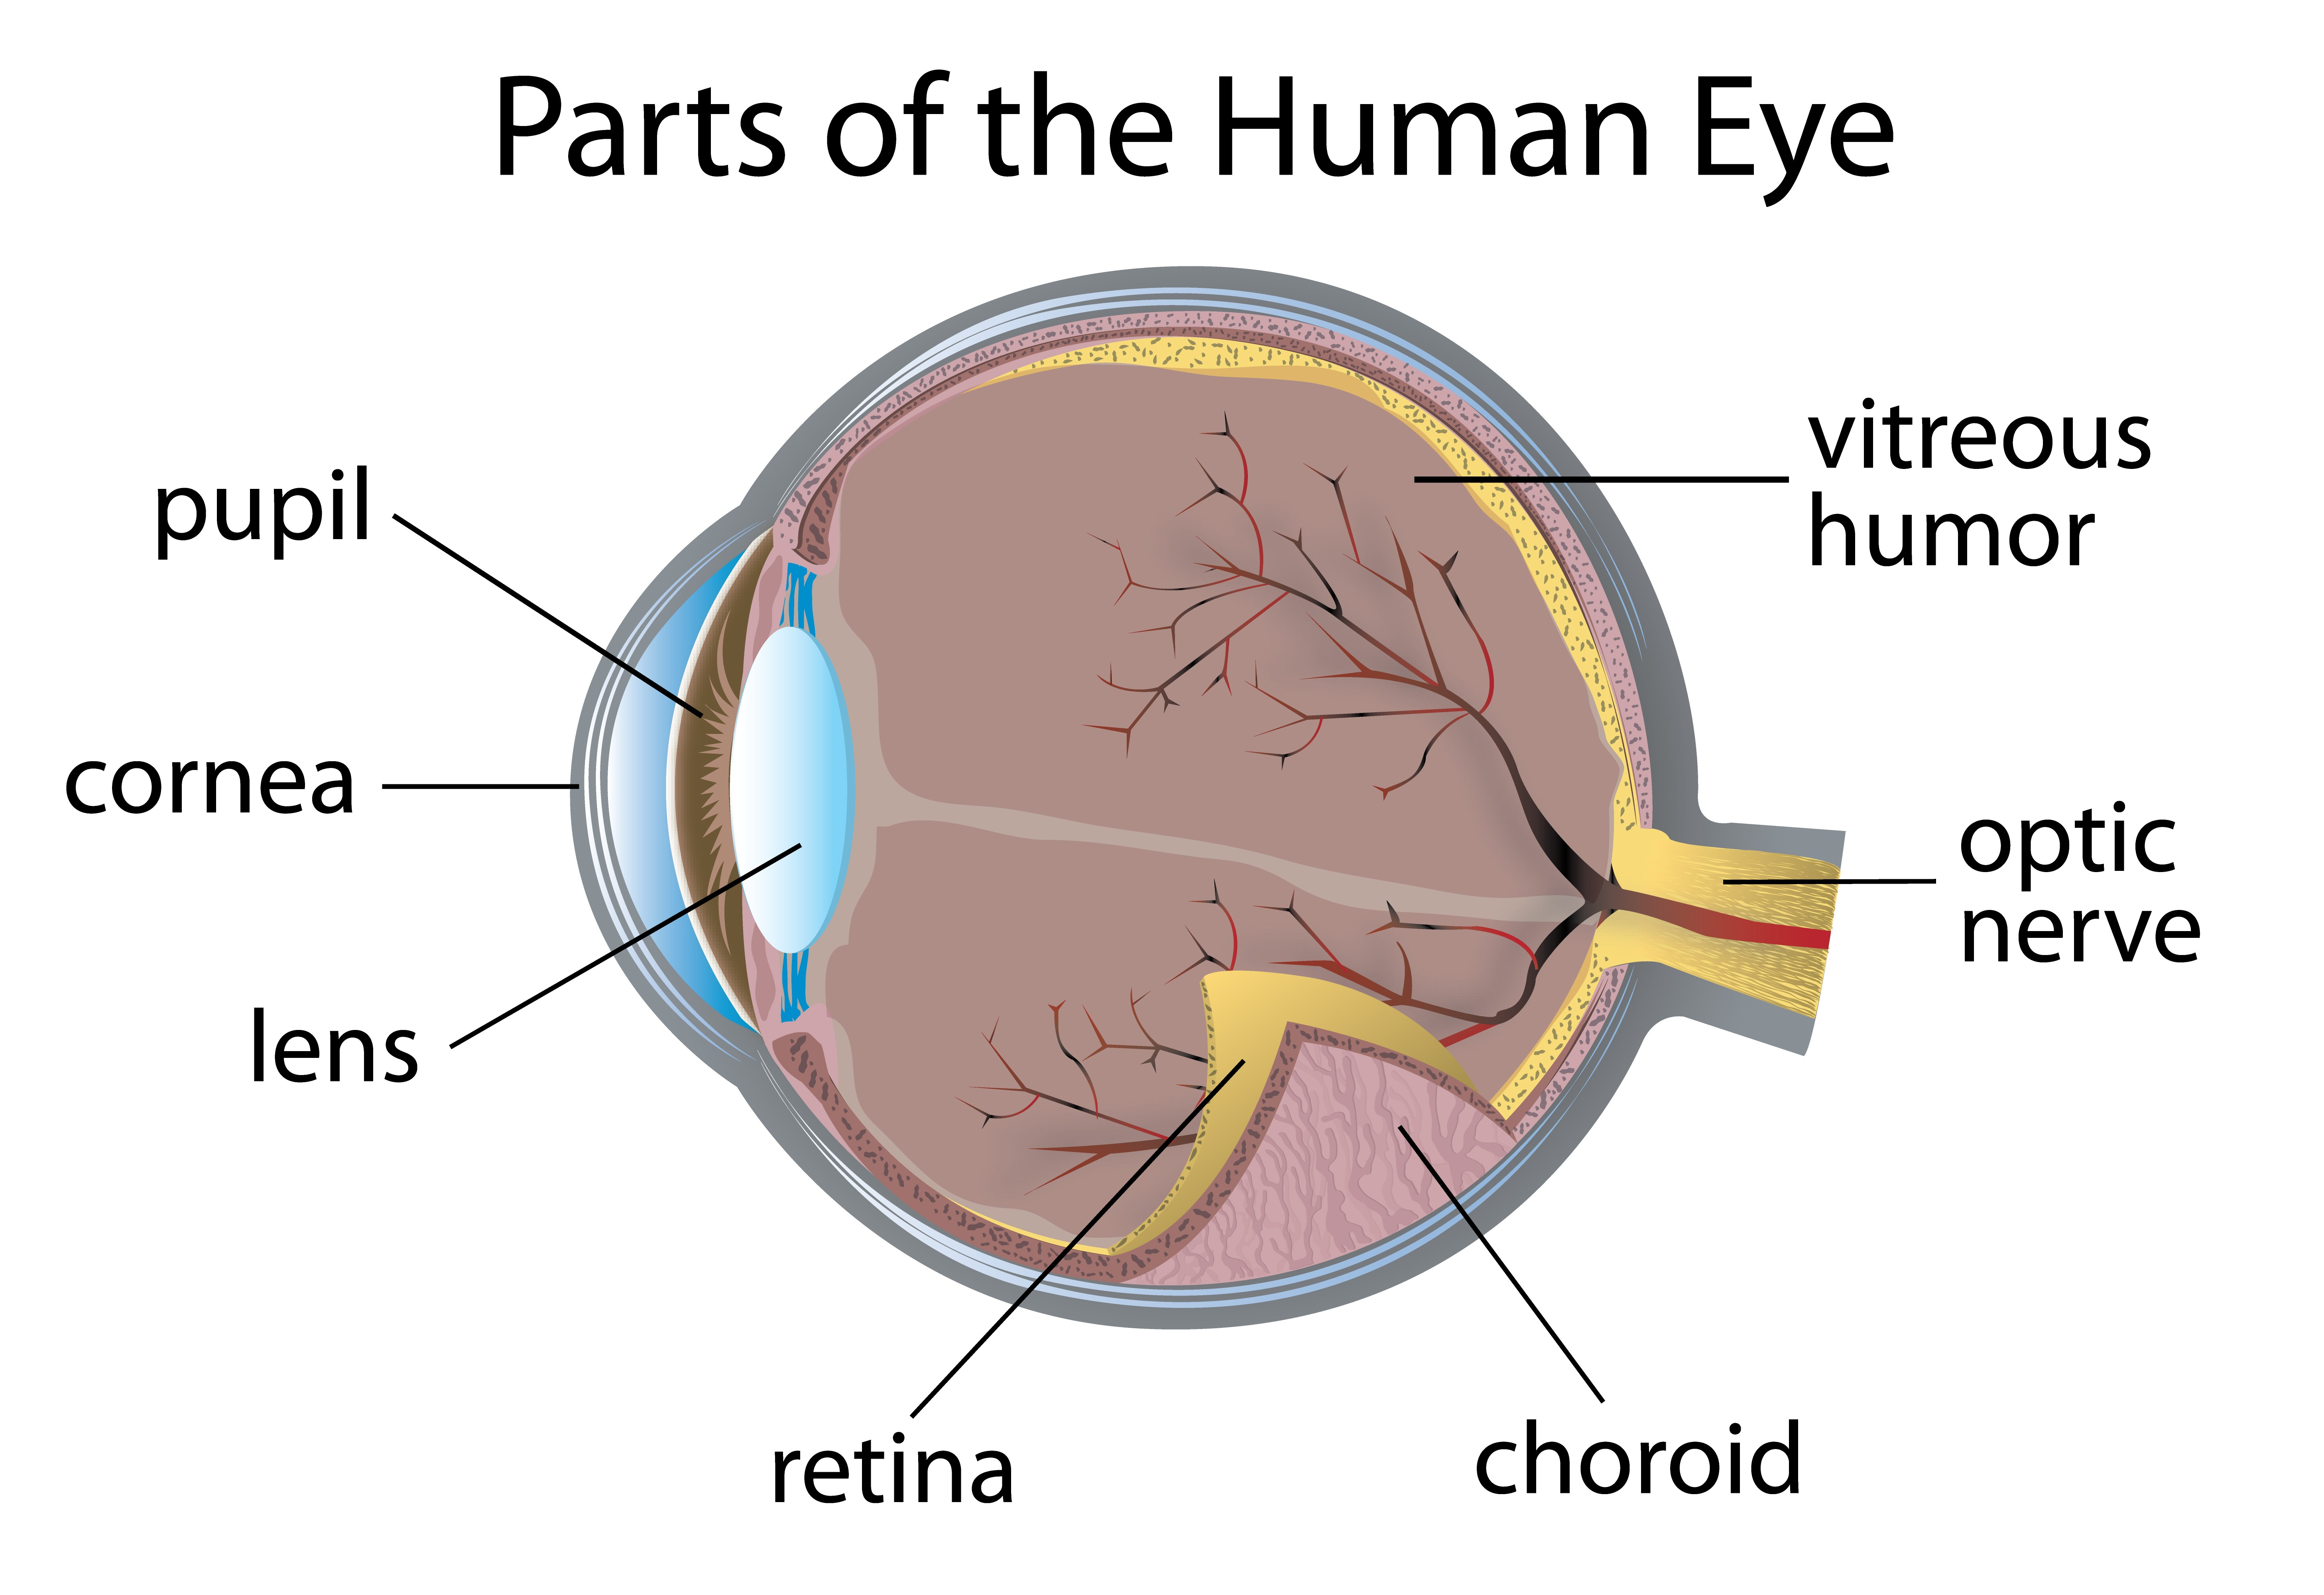 Drug Approved To Treat Diabetic Retinopathy In Those With